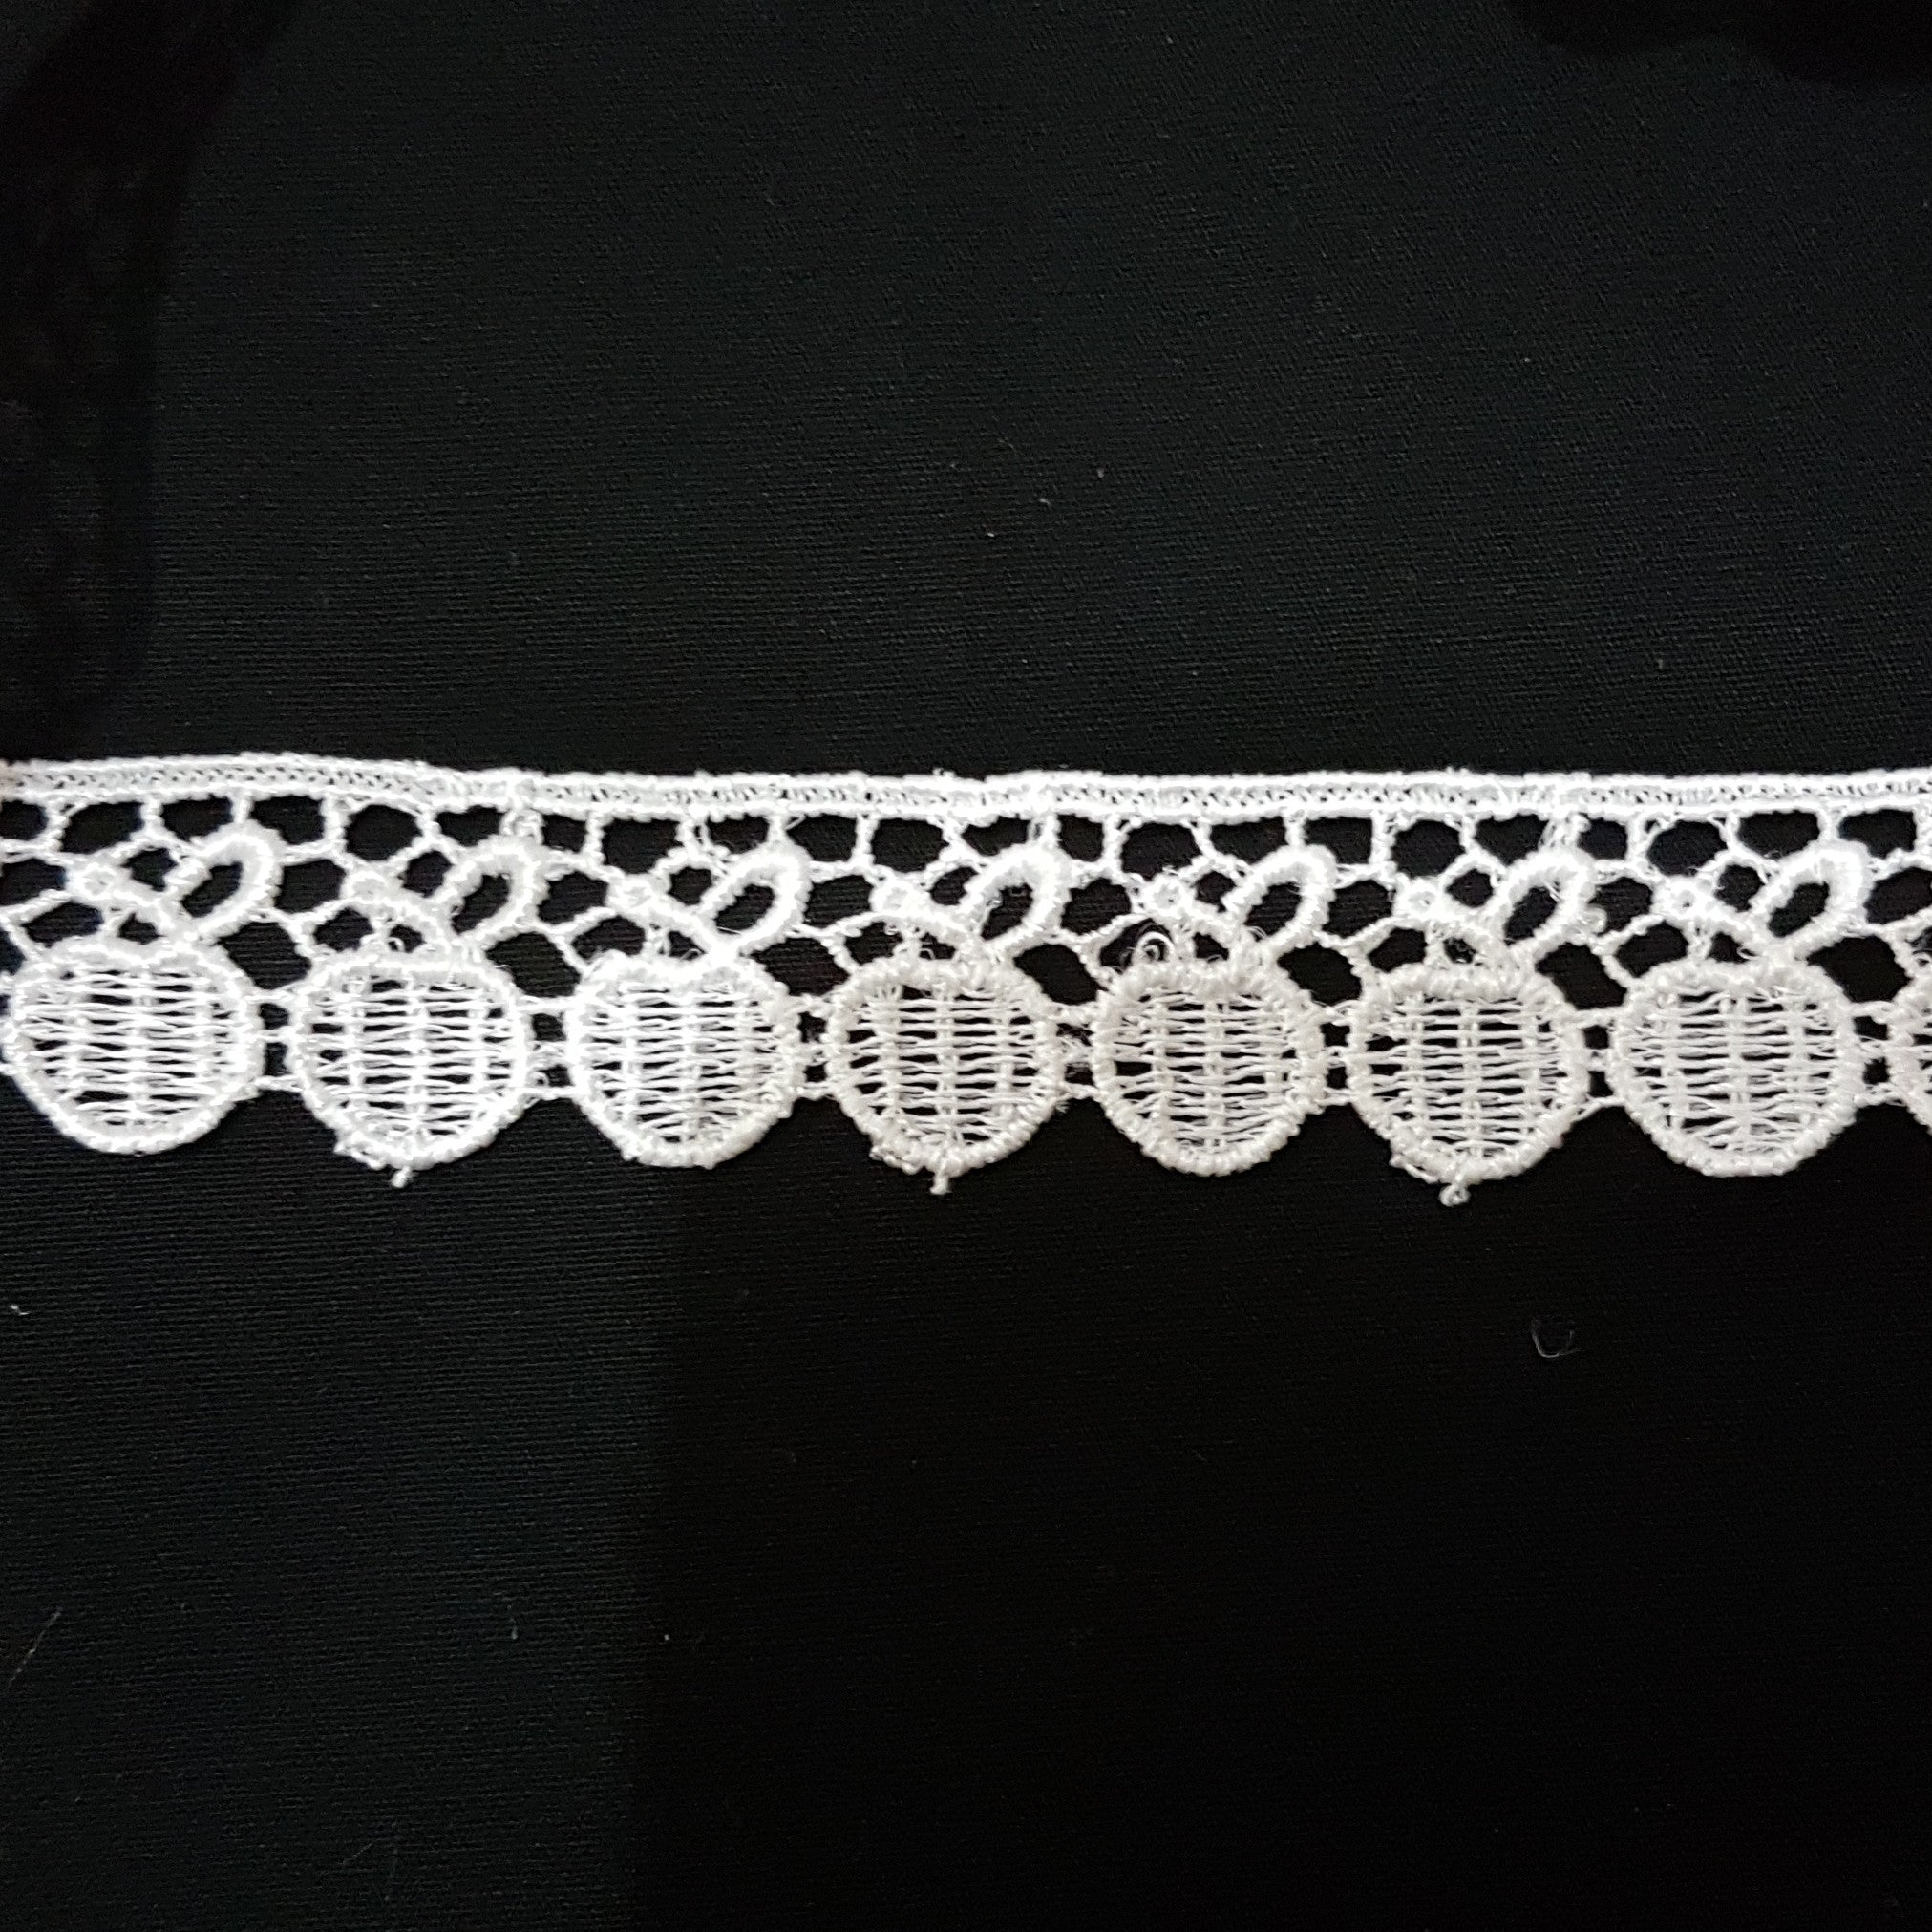 20mm Apples White Guipure Lace Trim - by the metre - Vera Fabrics